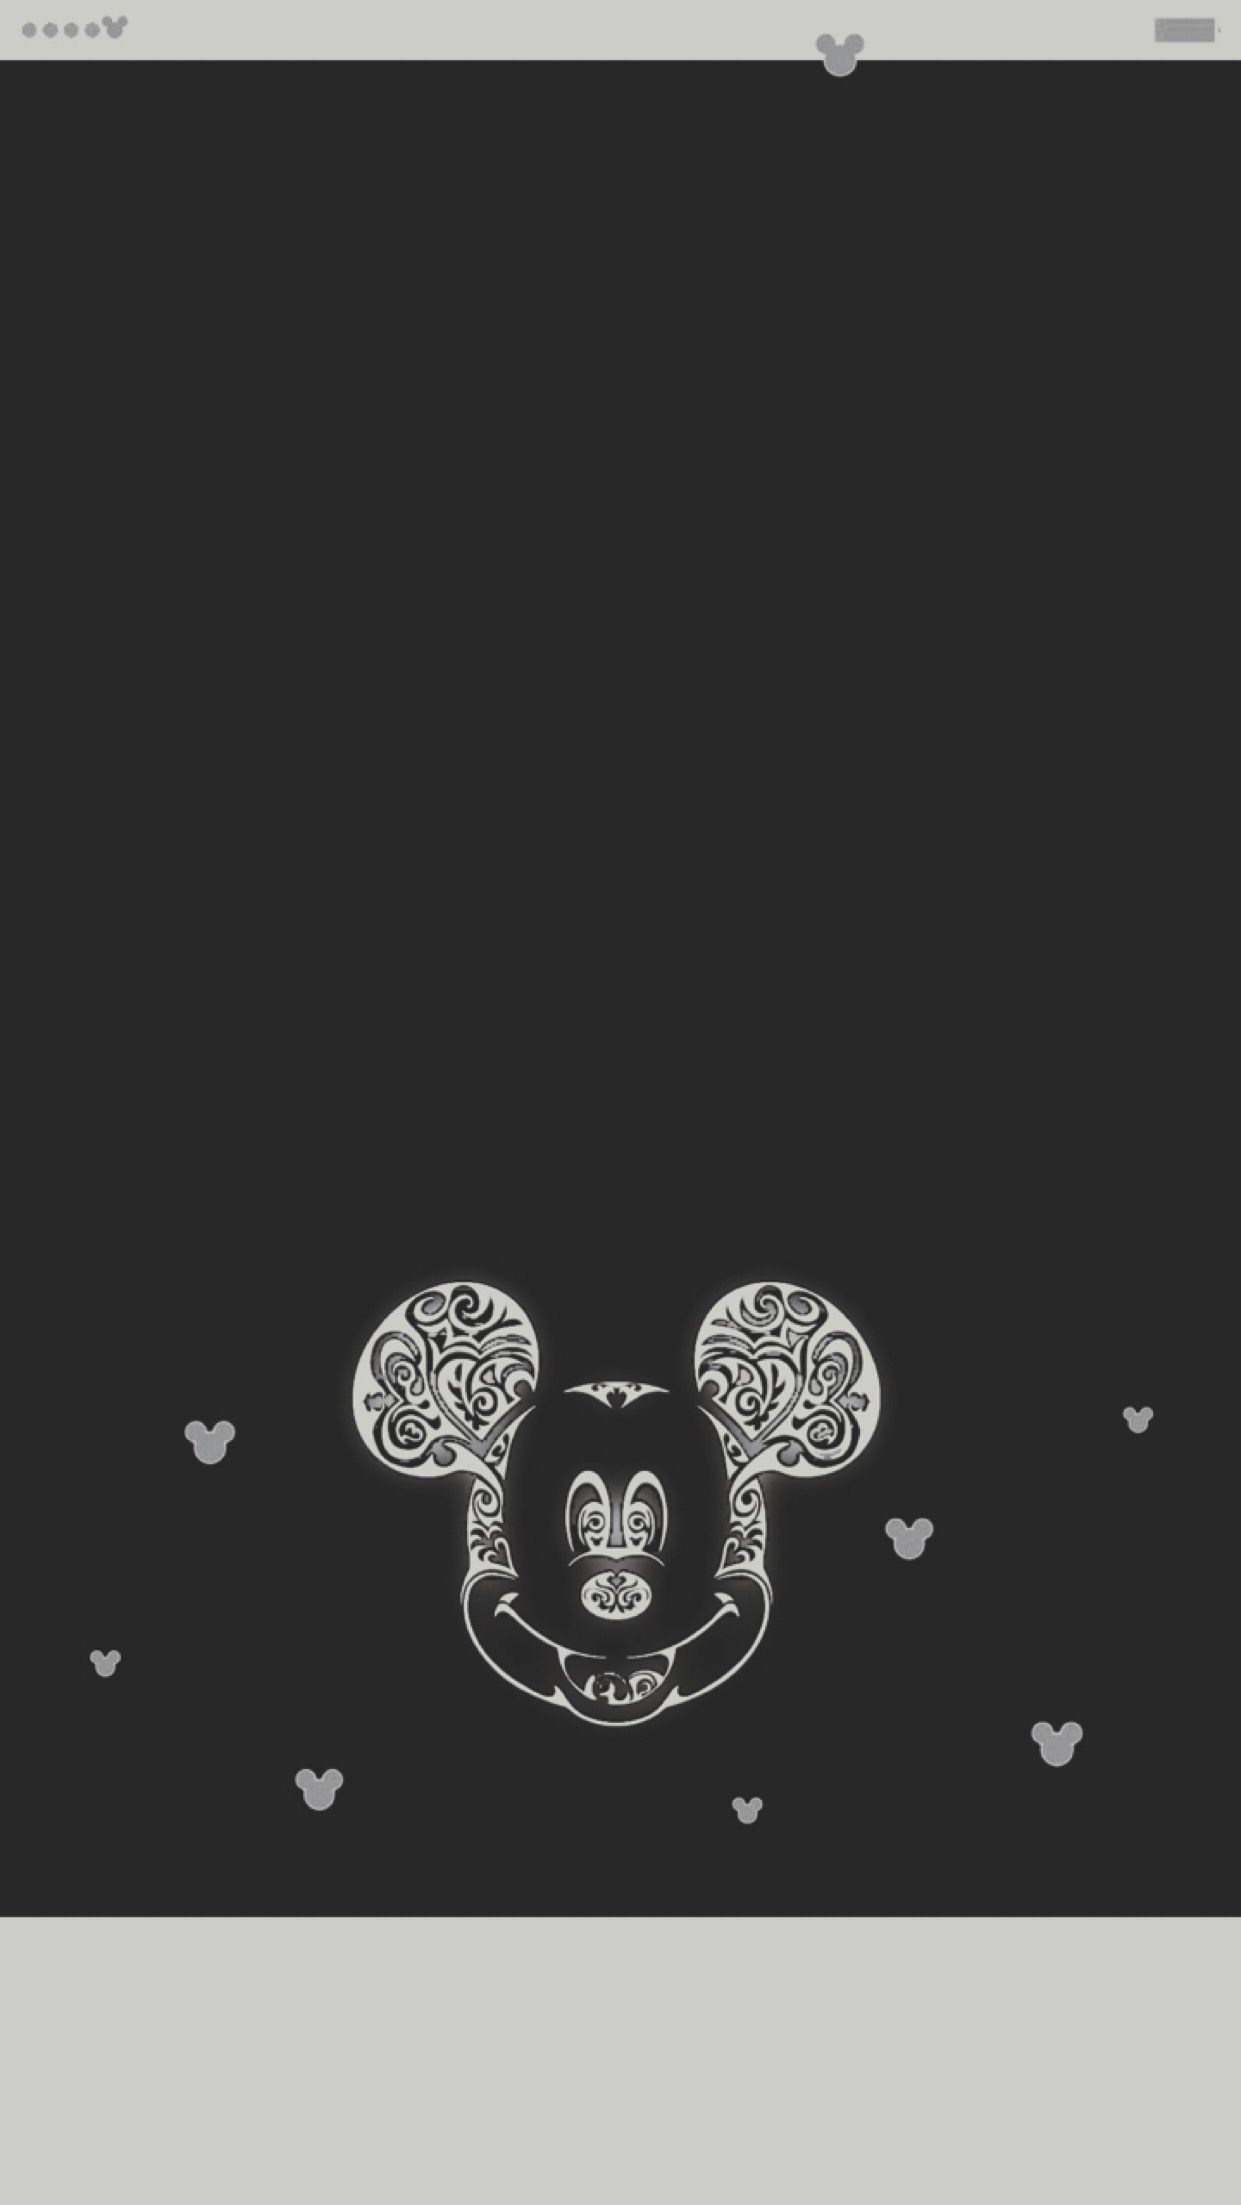 Mickey Mouse Black And White Wallpapers Top Free Mickey Mouse Black And White Backgrounds Wallpaperaccess